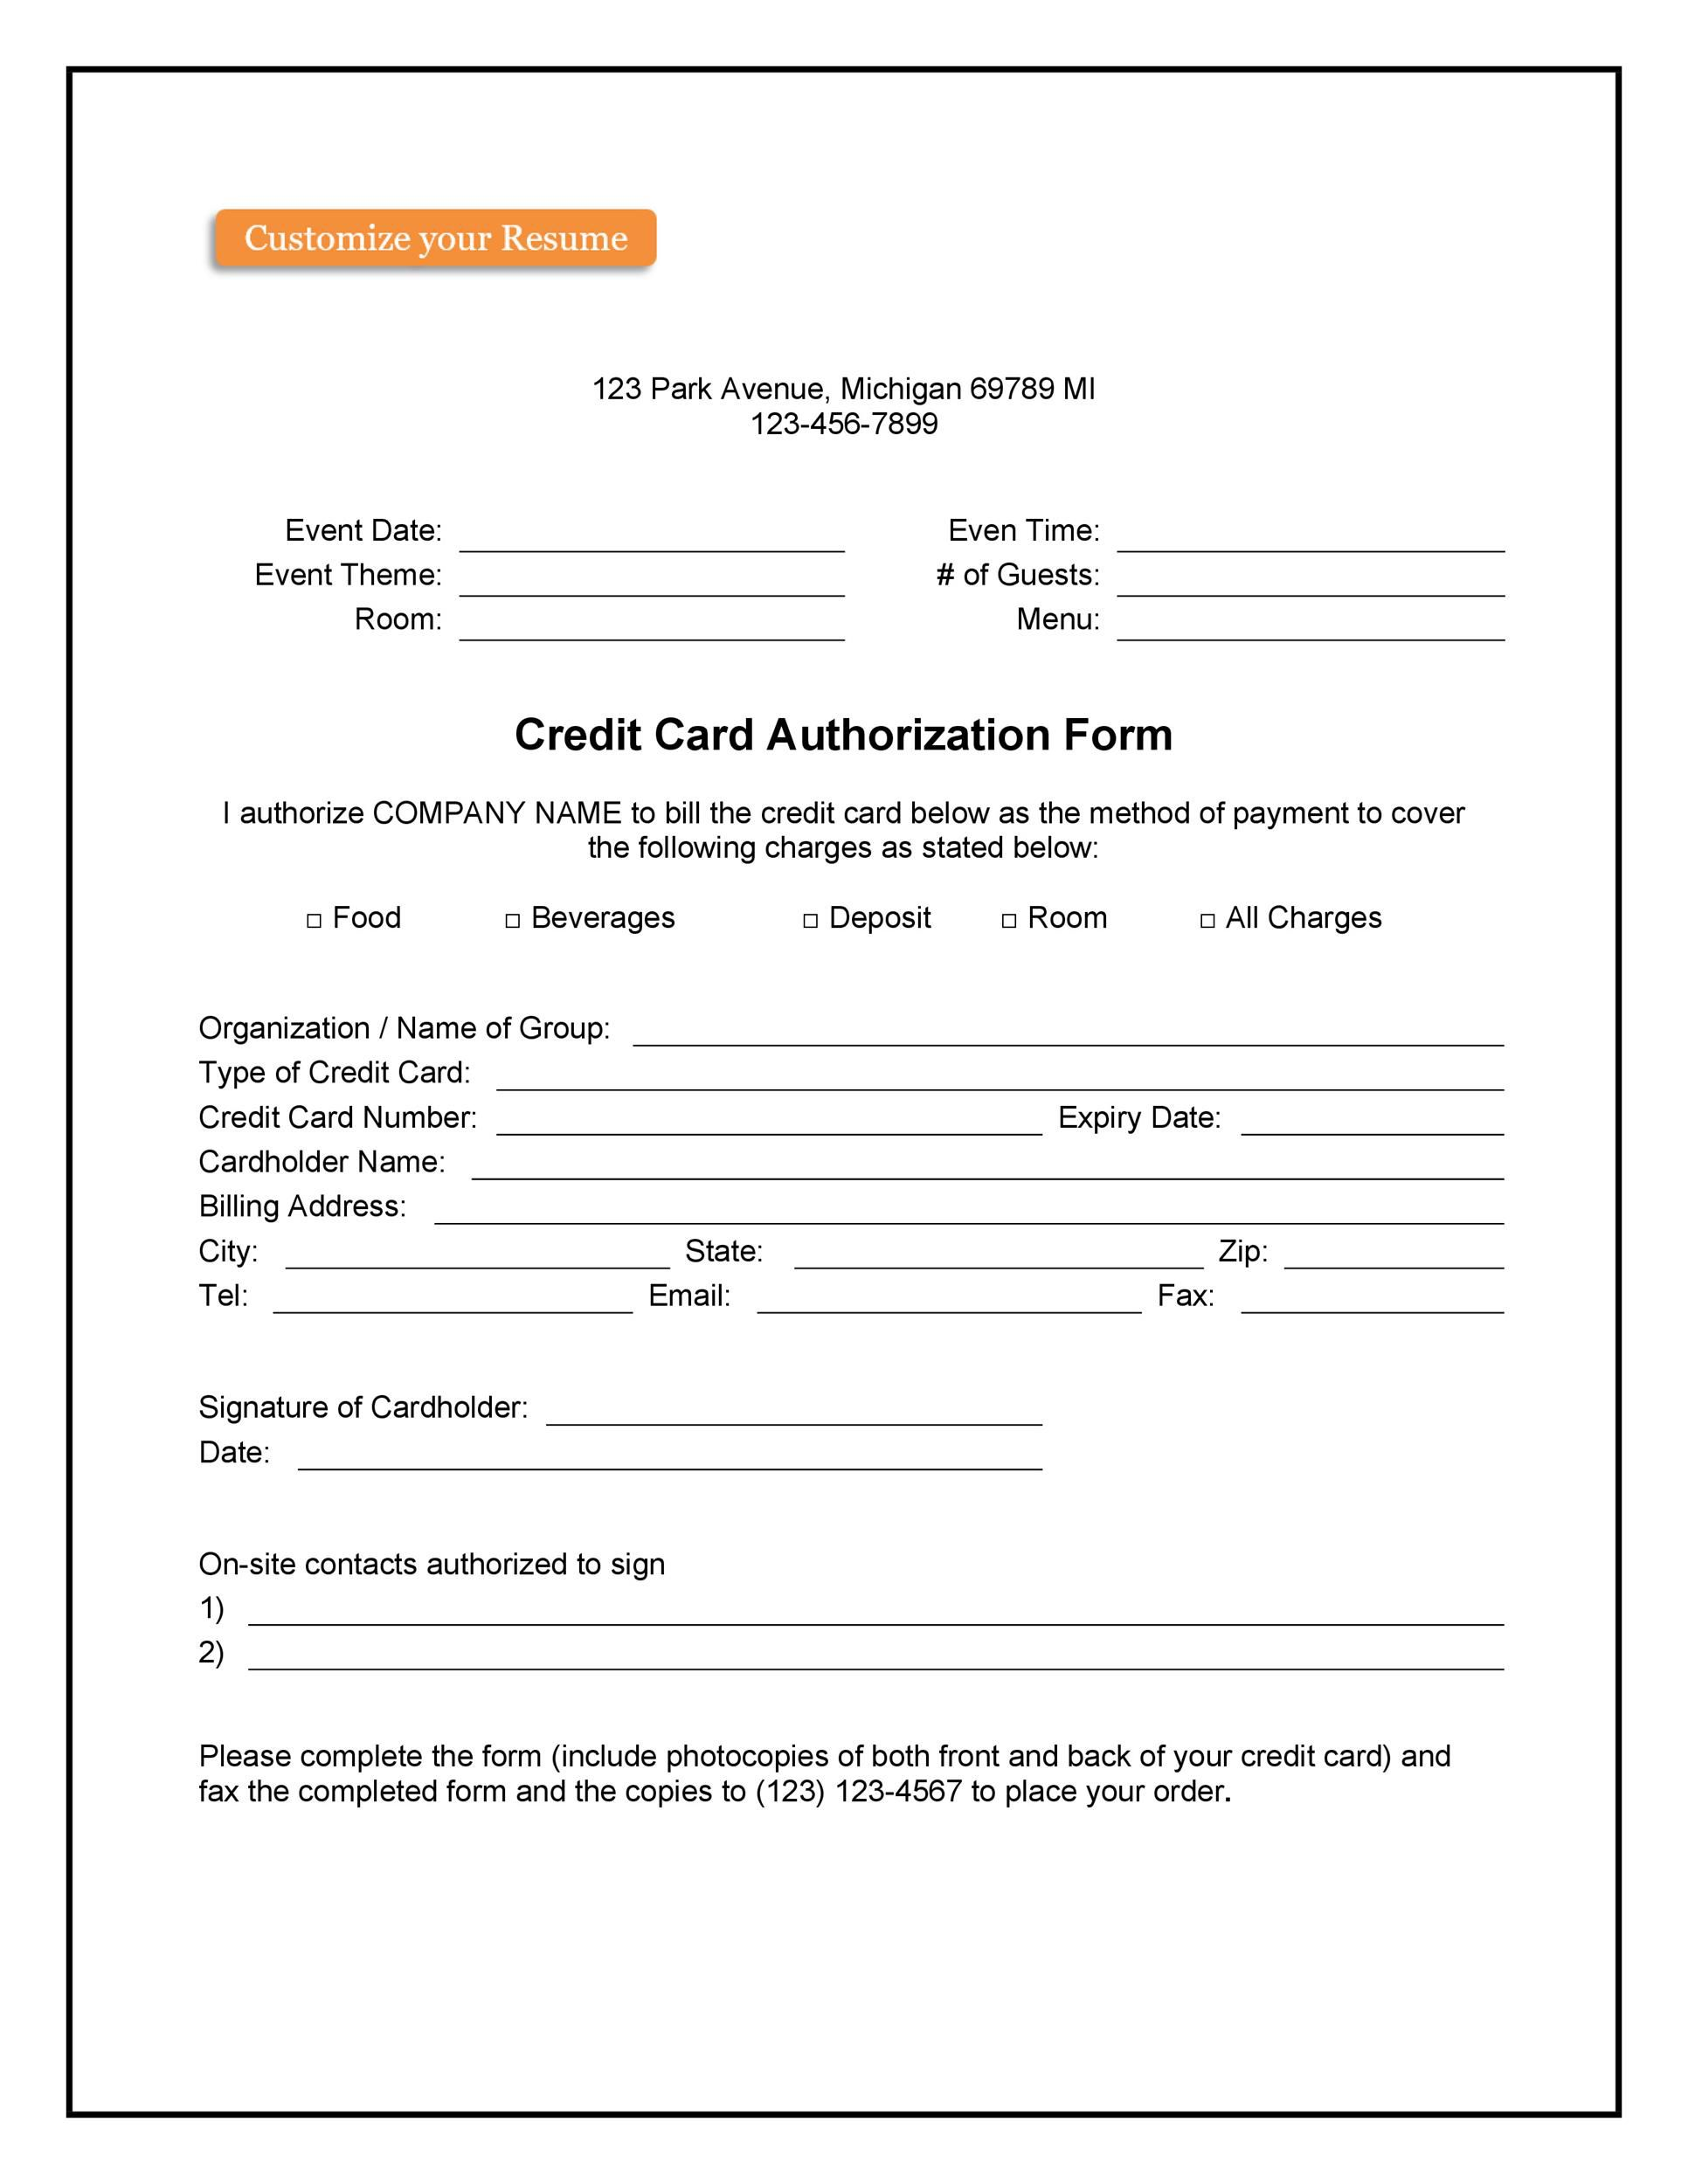 008 Marvelou One Time Credit Card Payment Authorization Form Template Highest Clarity Full